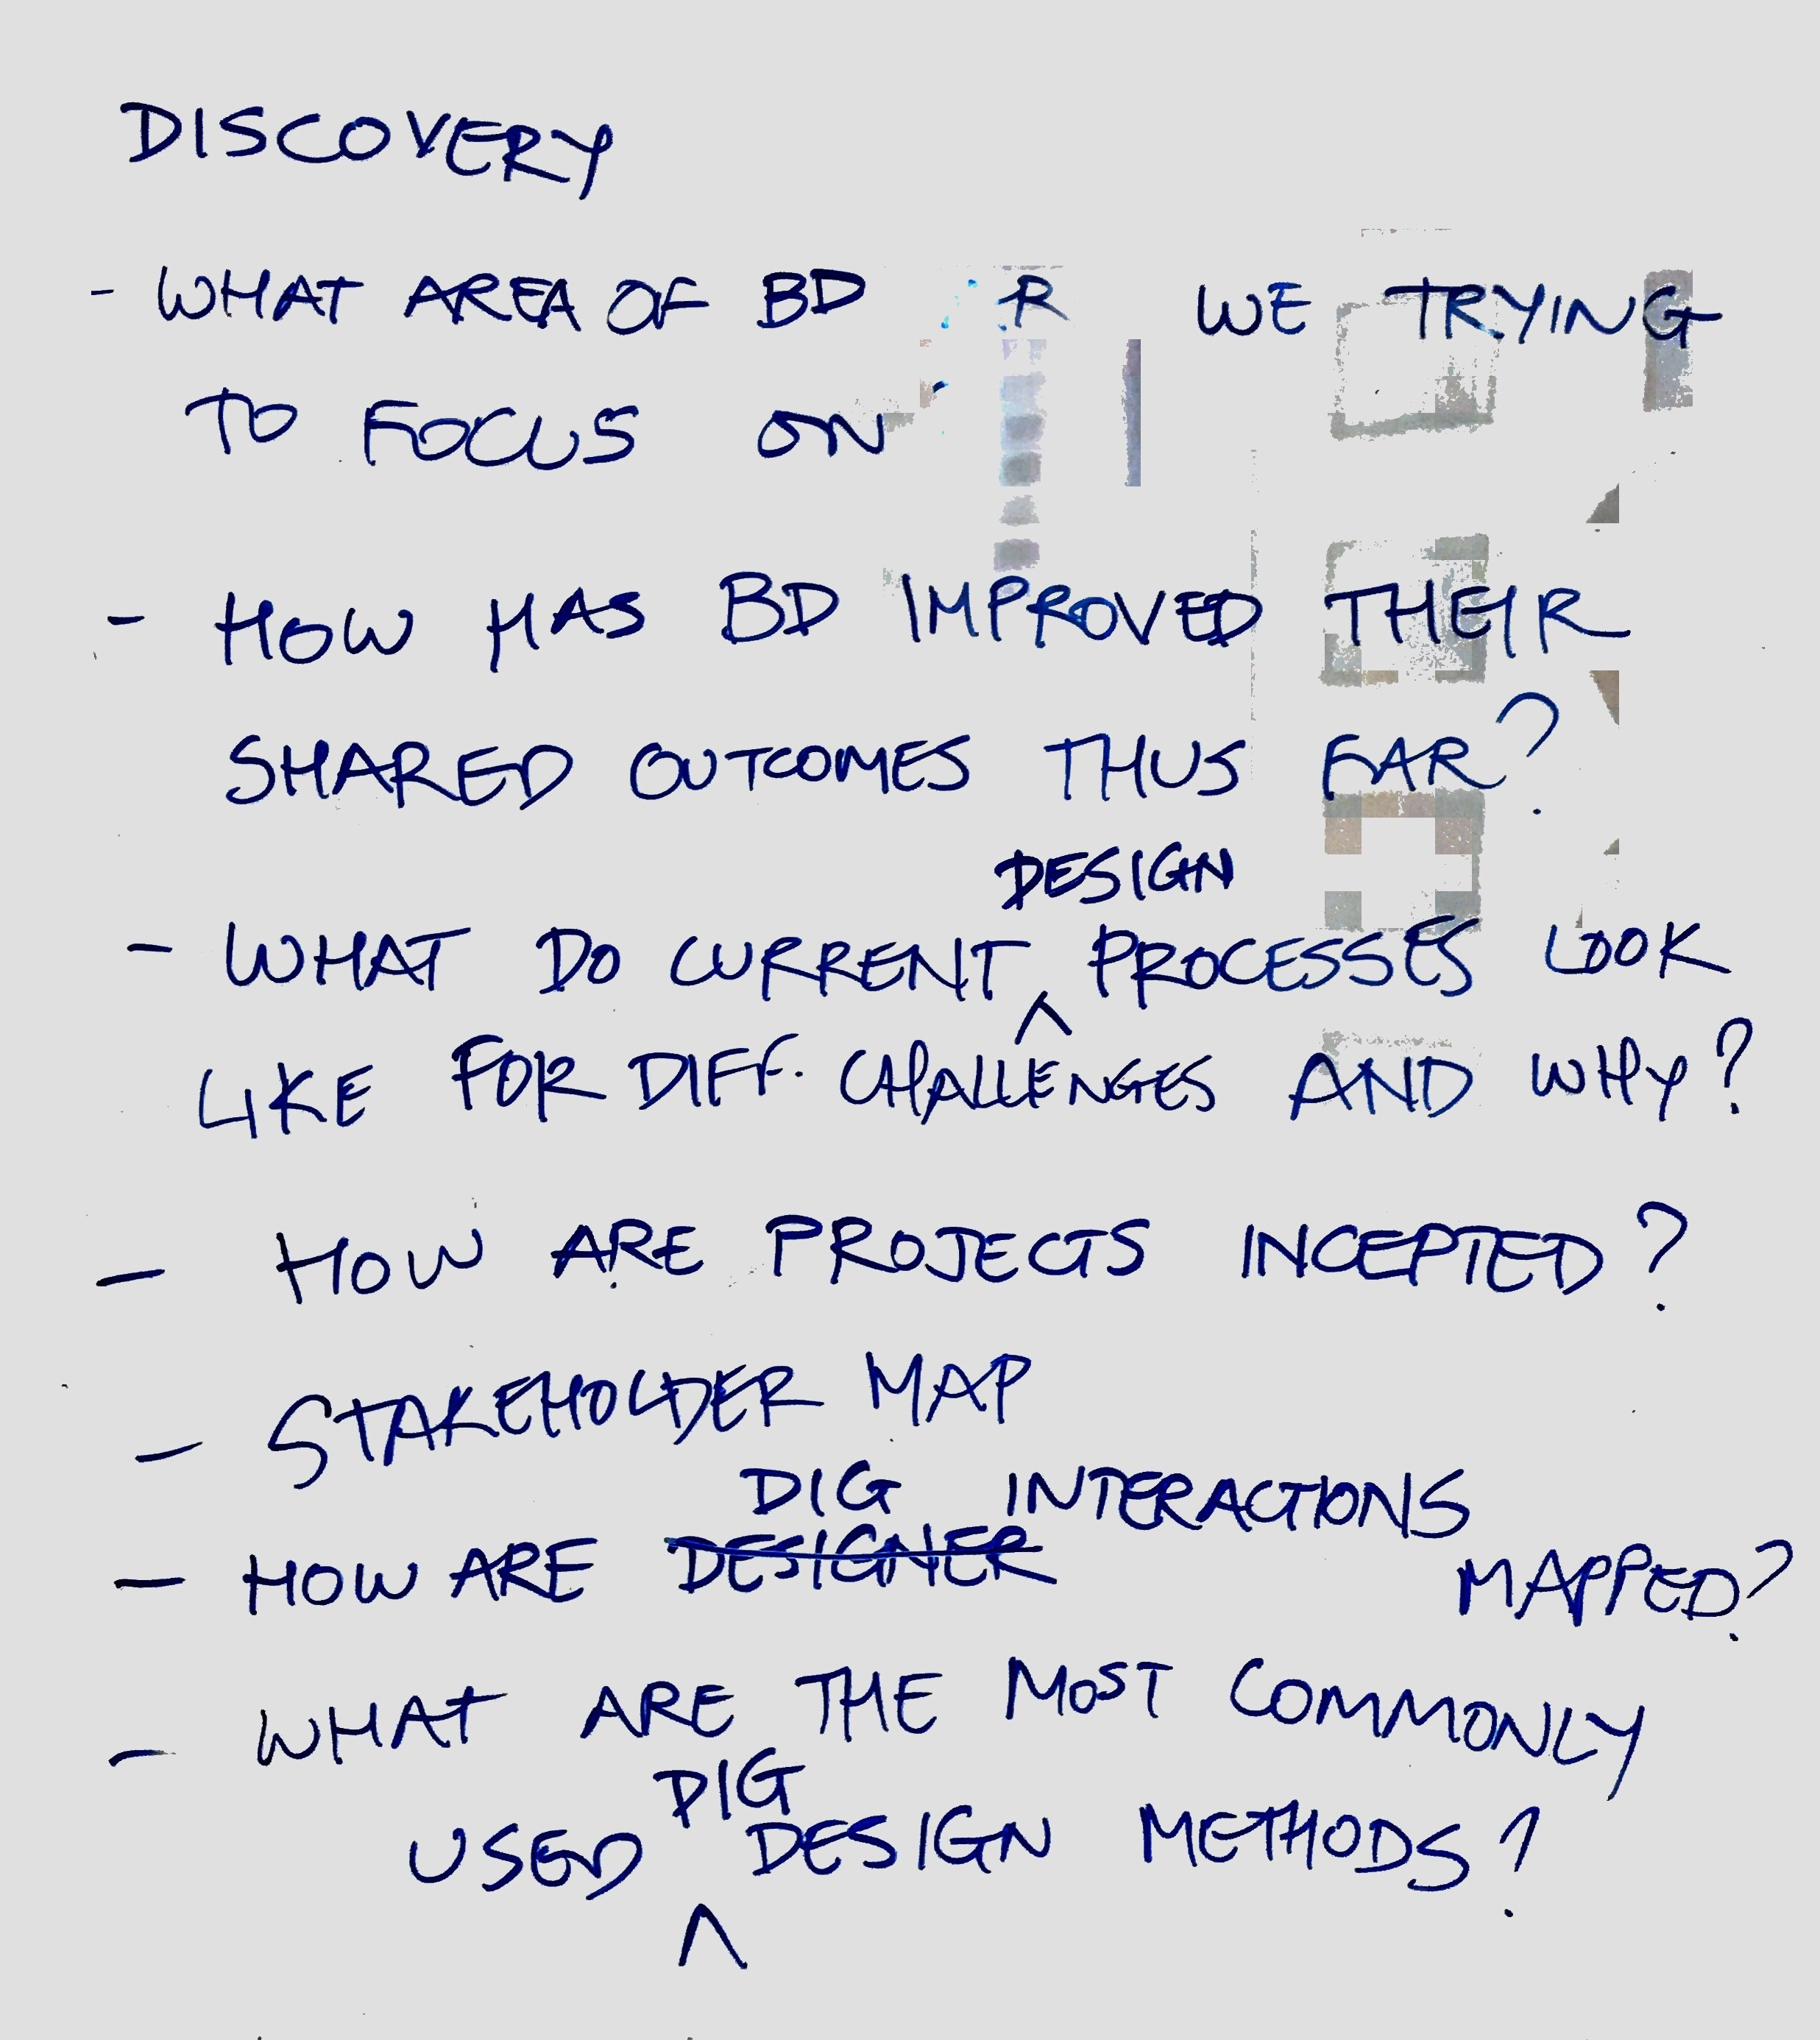 A list of initial questions we hoped to answer through user interviews.